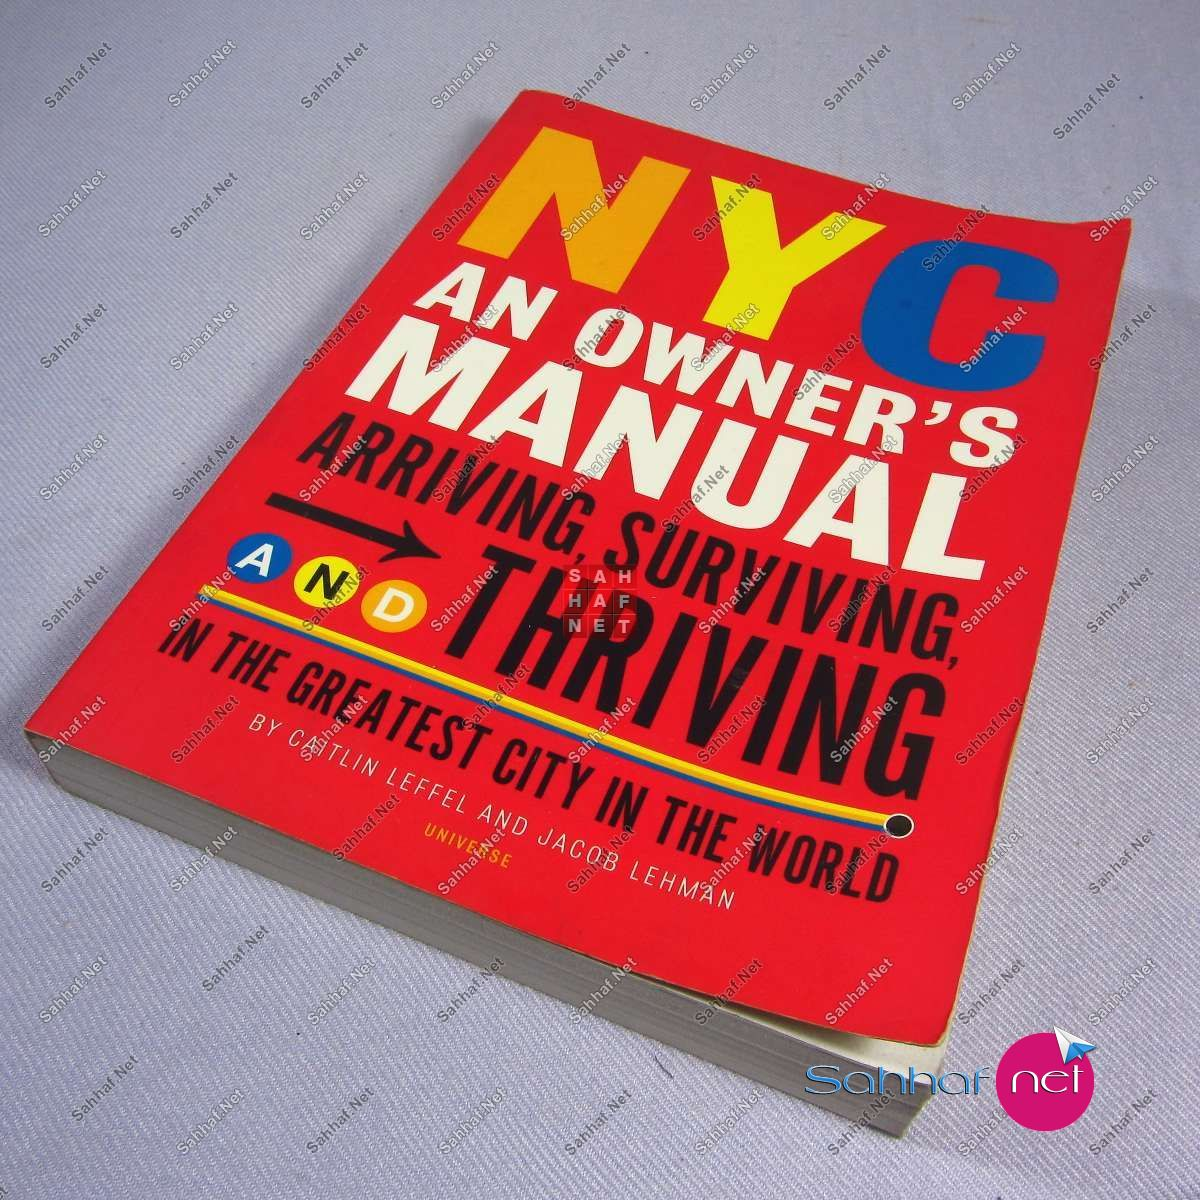 NYC AN OWNER'S MANUAL – Caitlin Leffel Kitap